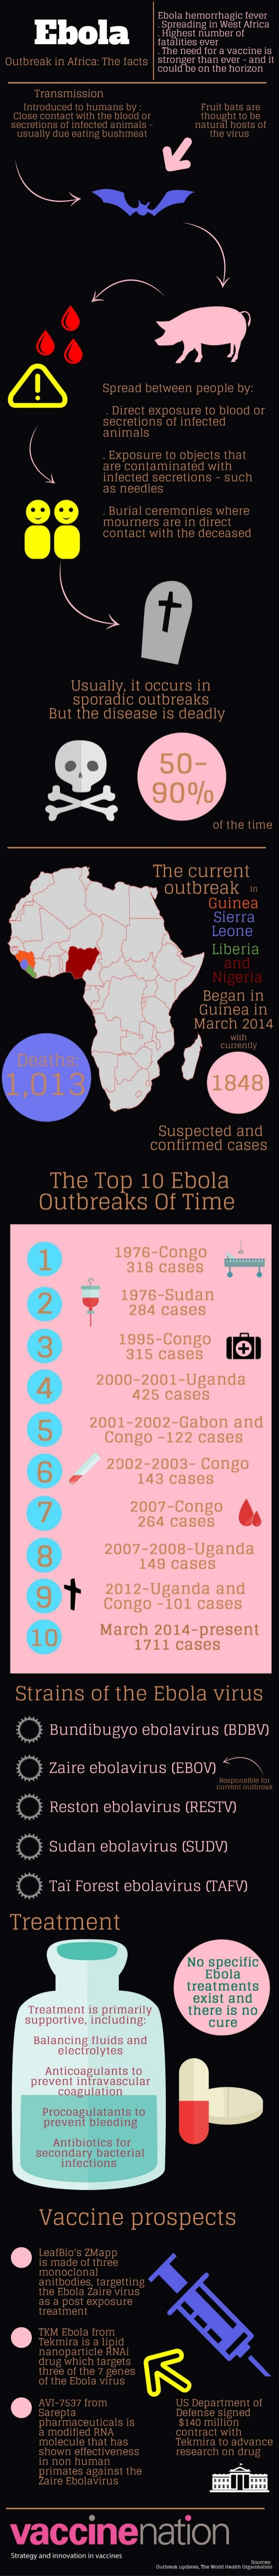 How the Ebola Virus is Transmitted and Makes Us Sick